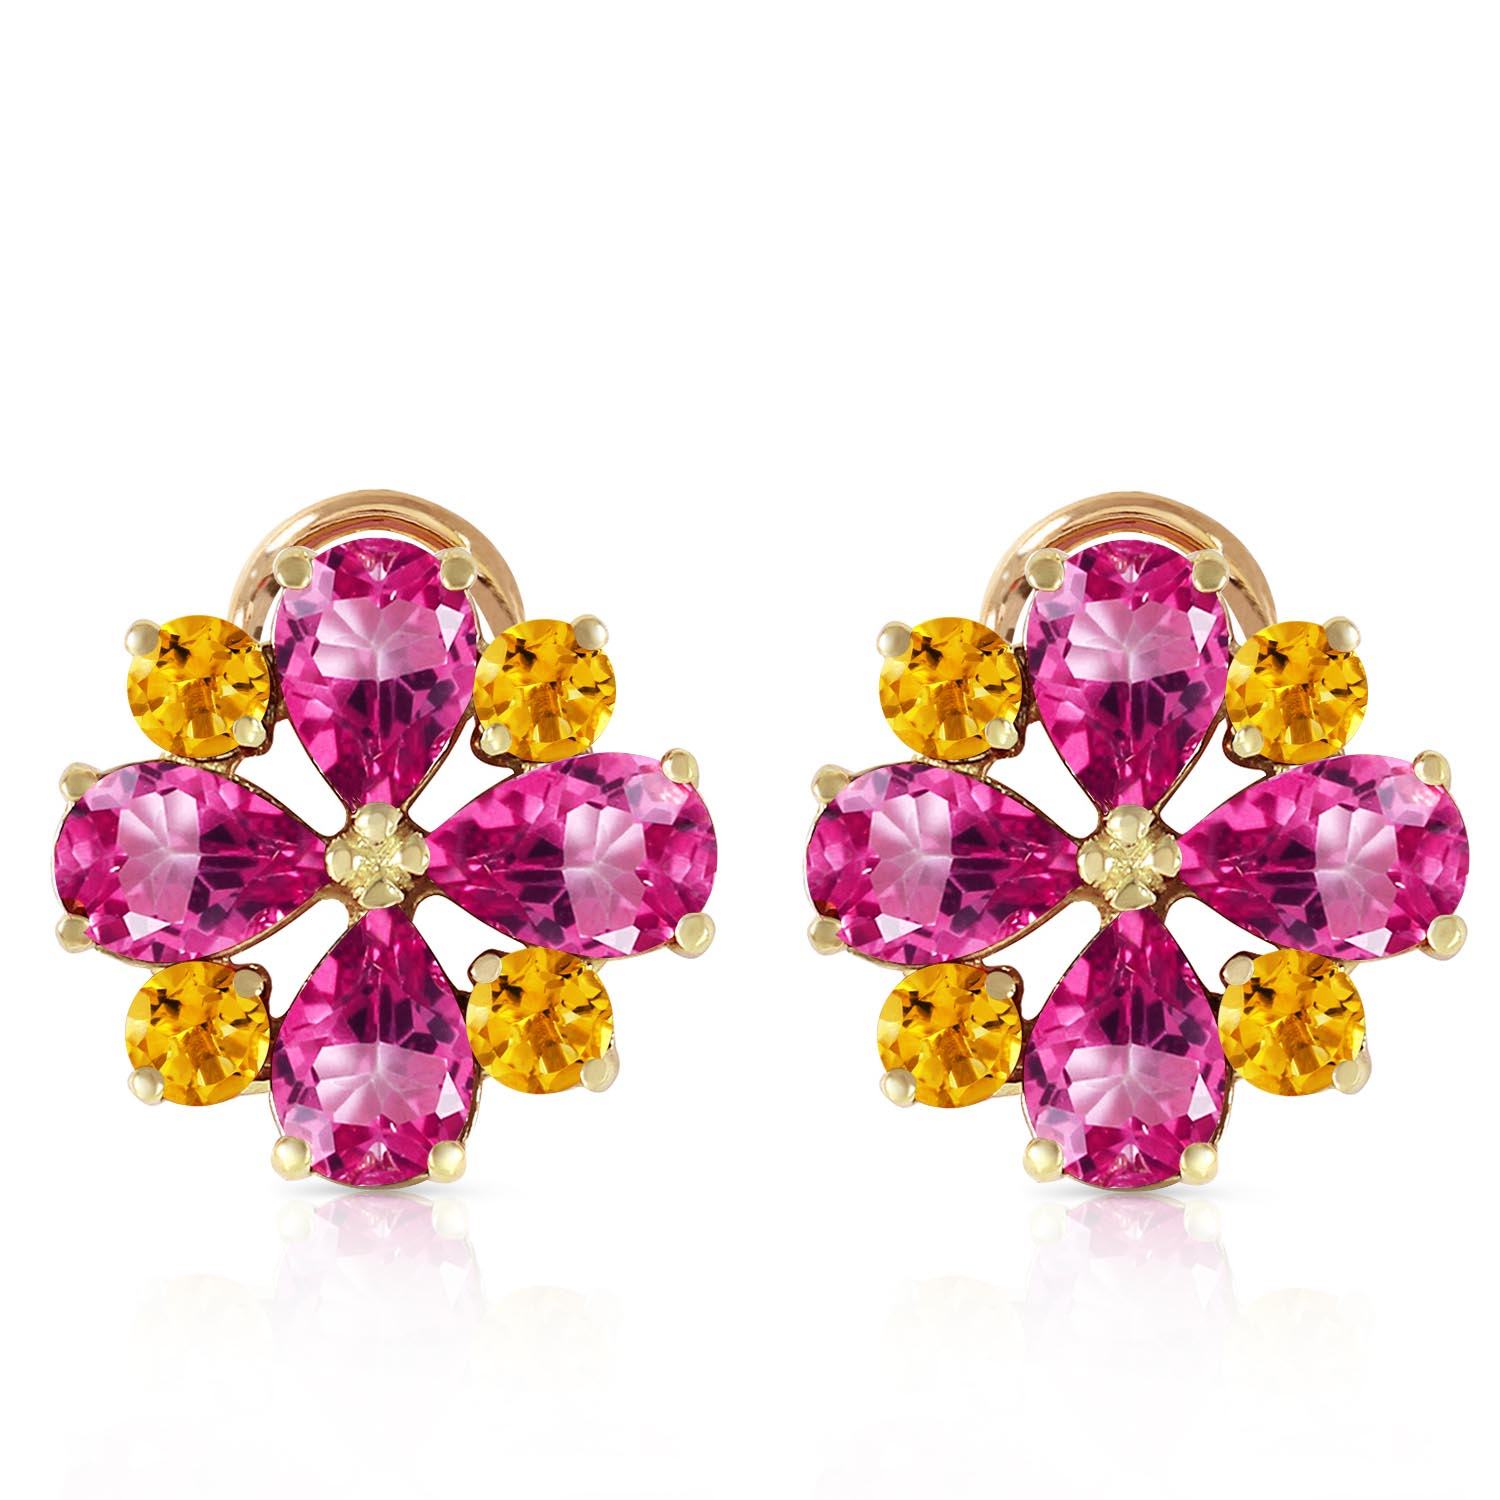 Pink Topaz & Citrine Sunflower Stud French Clip Earrings in 9ct Gold